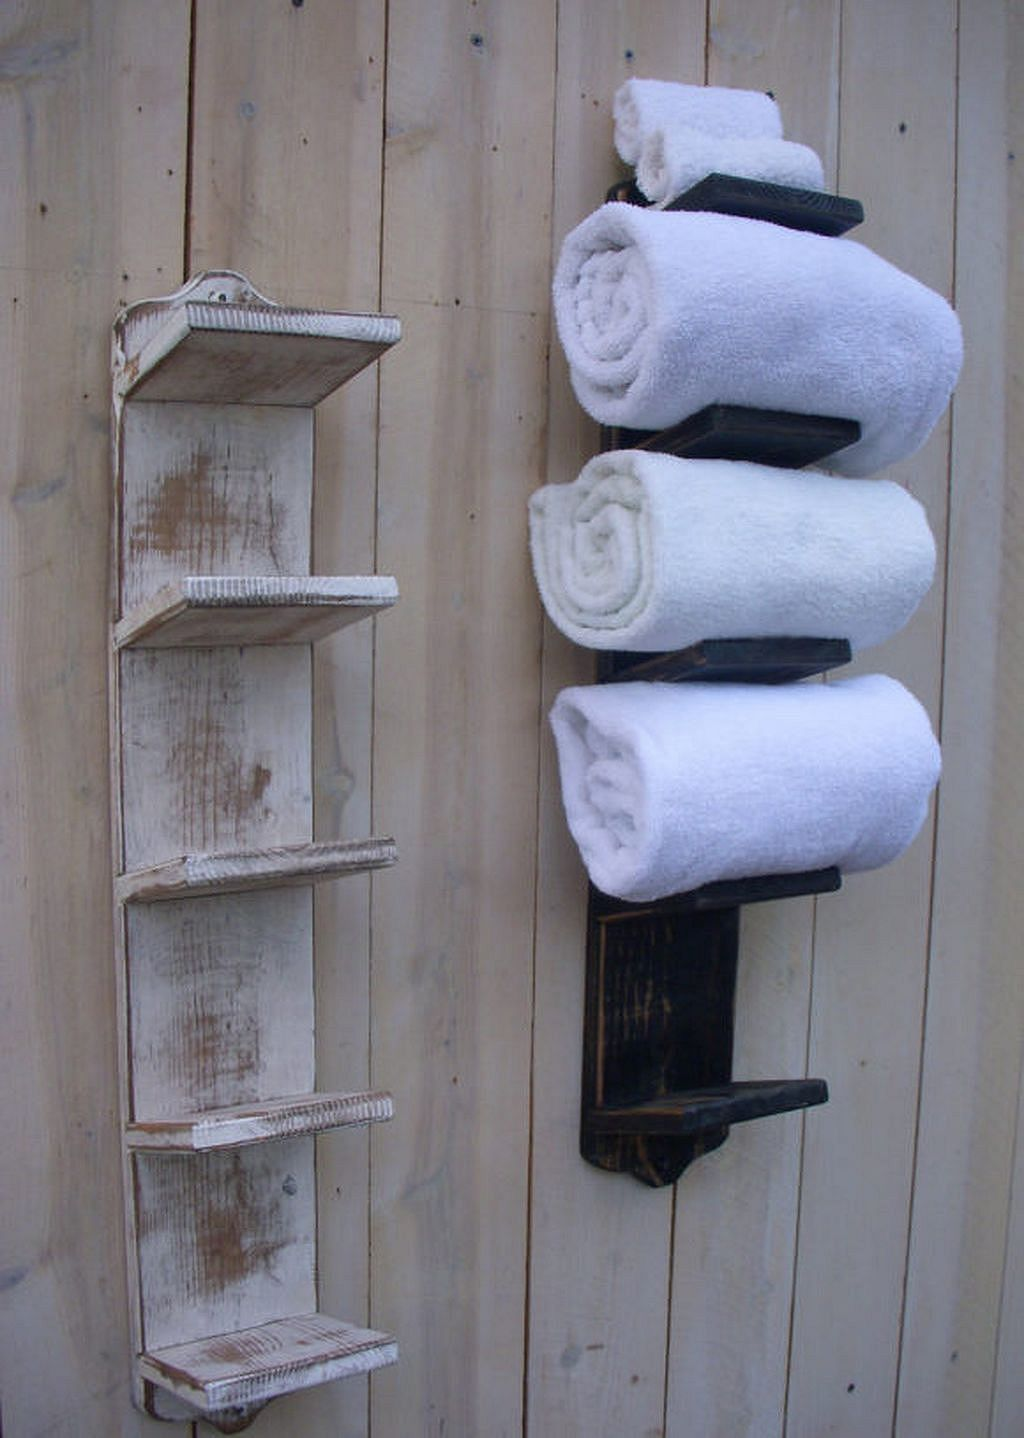 Awesome 40 Towel Storage For Small Bathroom Ideas Https Kidmagz Com 40 Towel Storage For Small Bathroom Idea Bathroom Towel Storage Rustic Towels Diy Towels